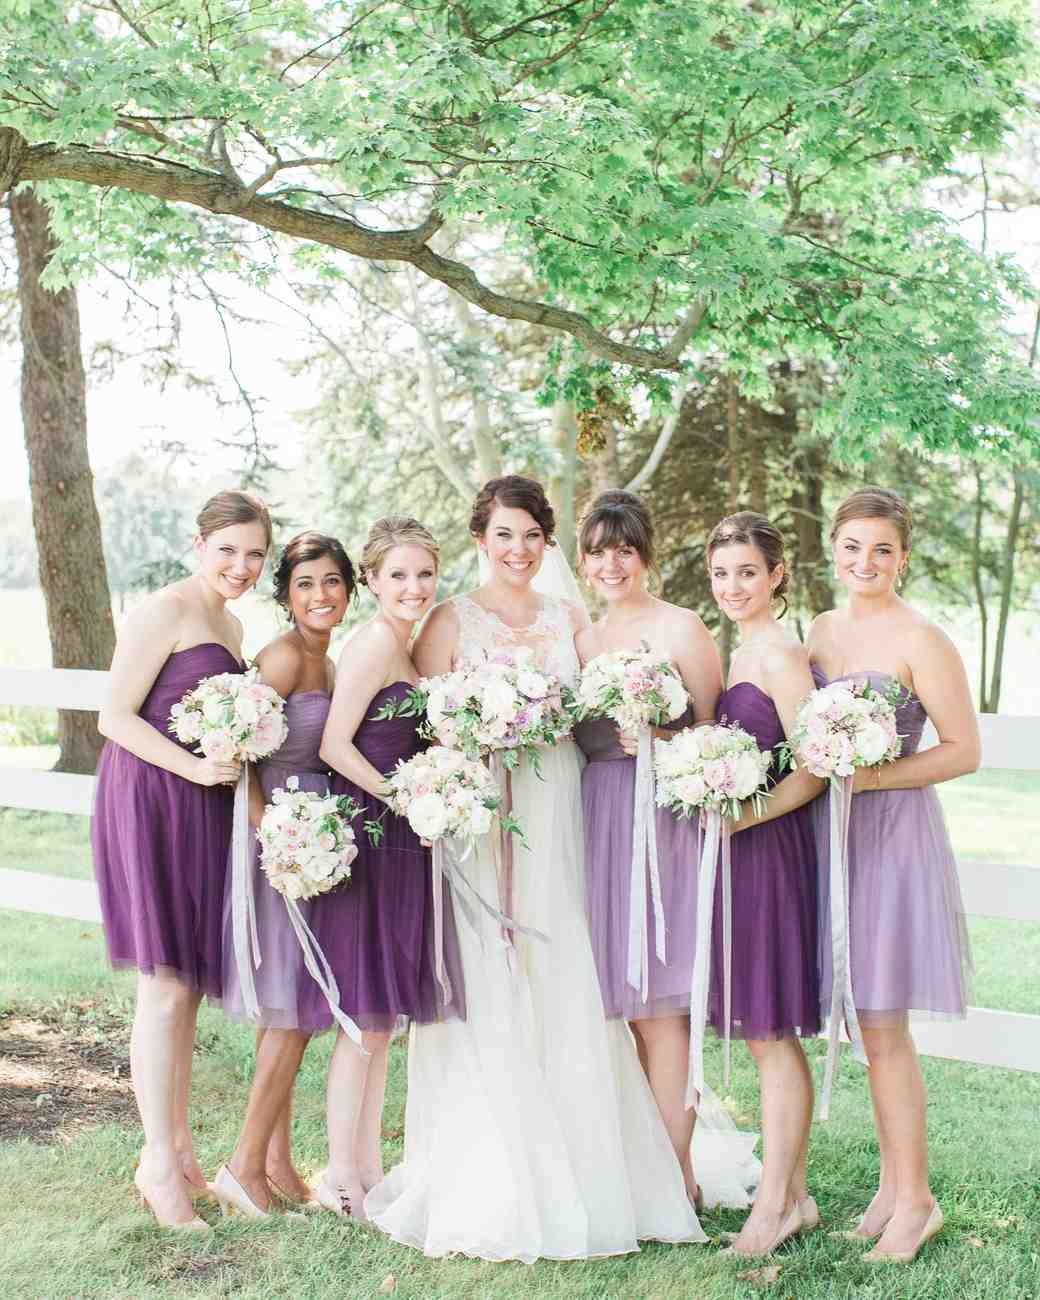 sarah-michael-wedding-purple-bridesmaids-356-s112783-0416.jpg